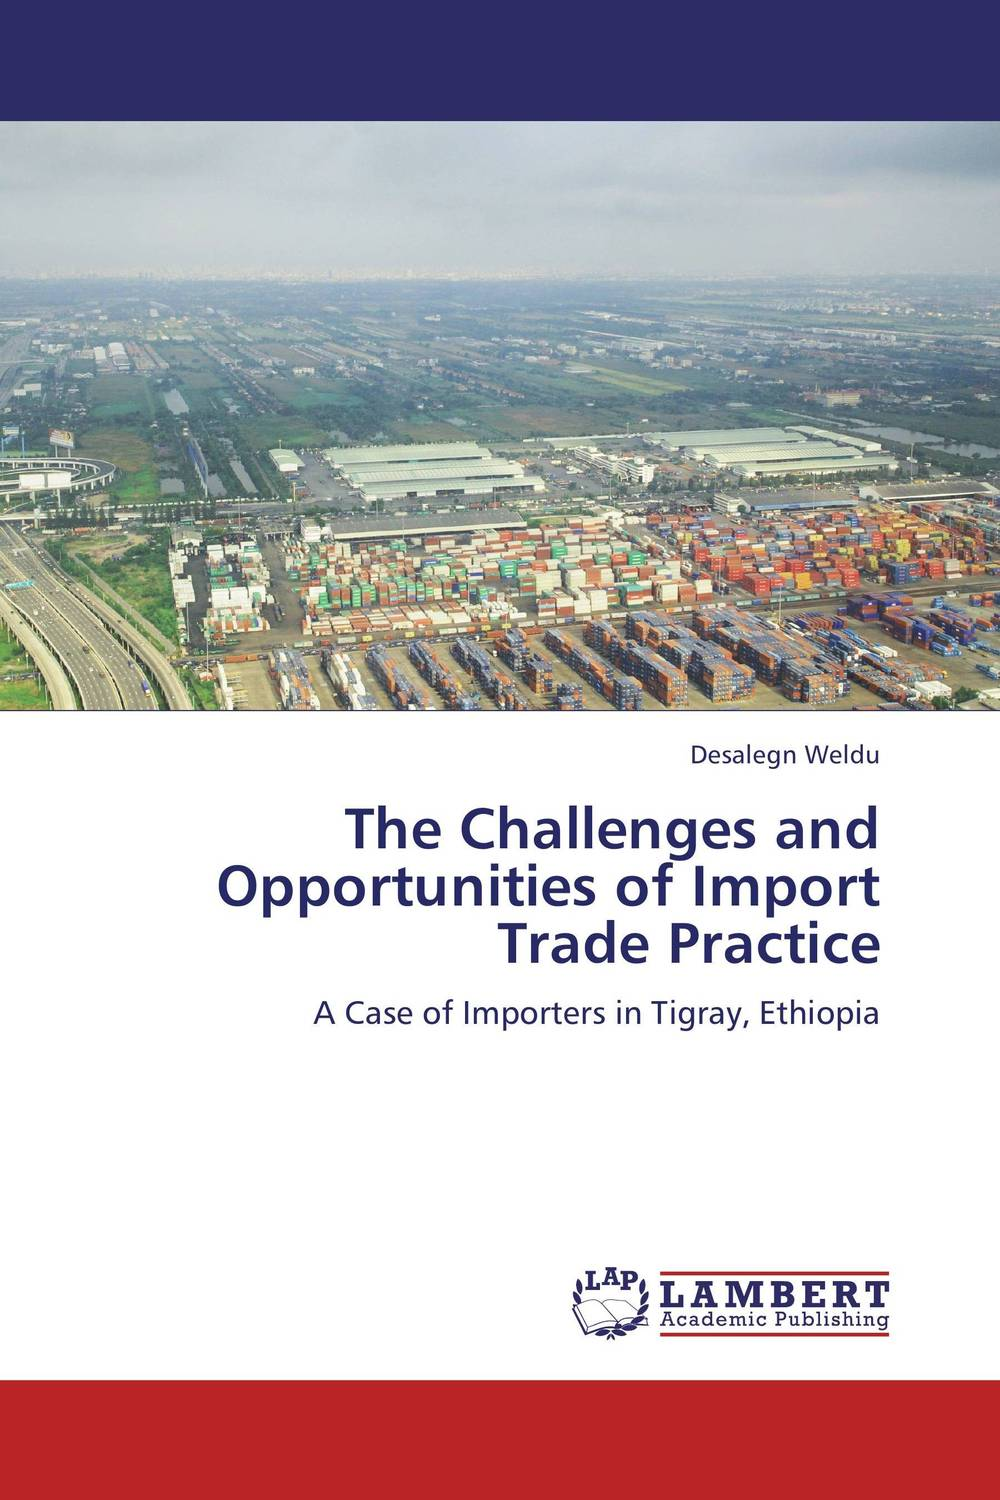 The Challenges and Opportunities of Import Trade Practice challenges and opportunities of indigenous church leaders in uganda